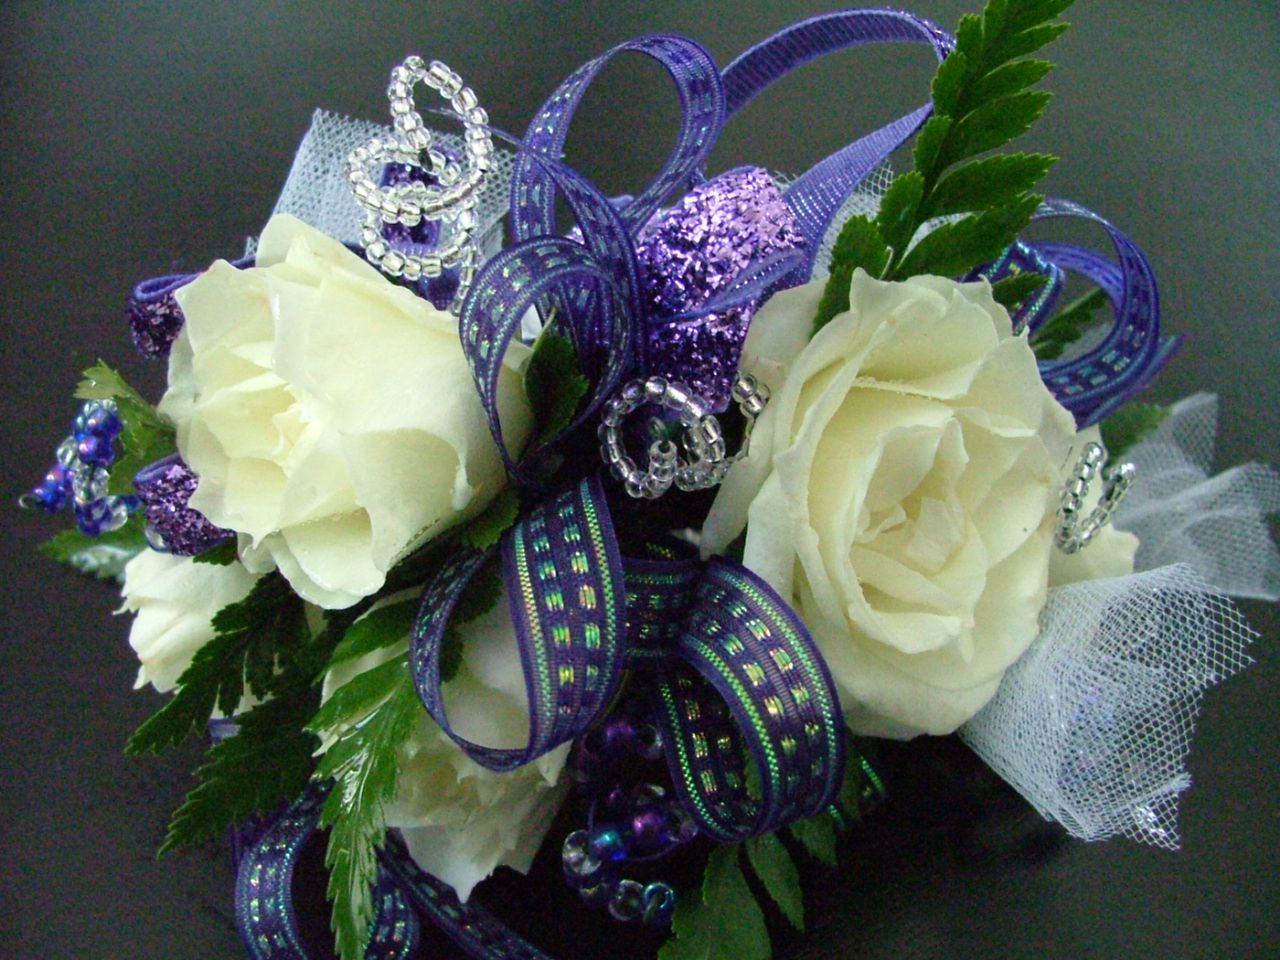 Prom Corsage: White roses with royal purple accents and